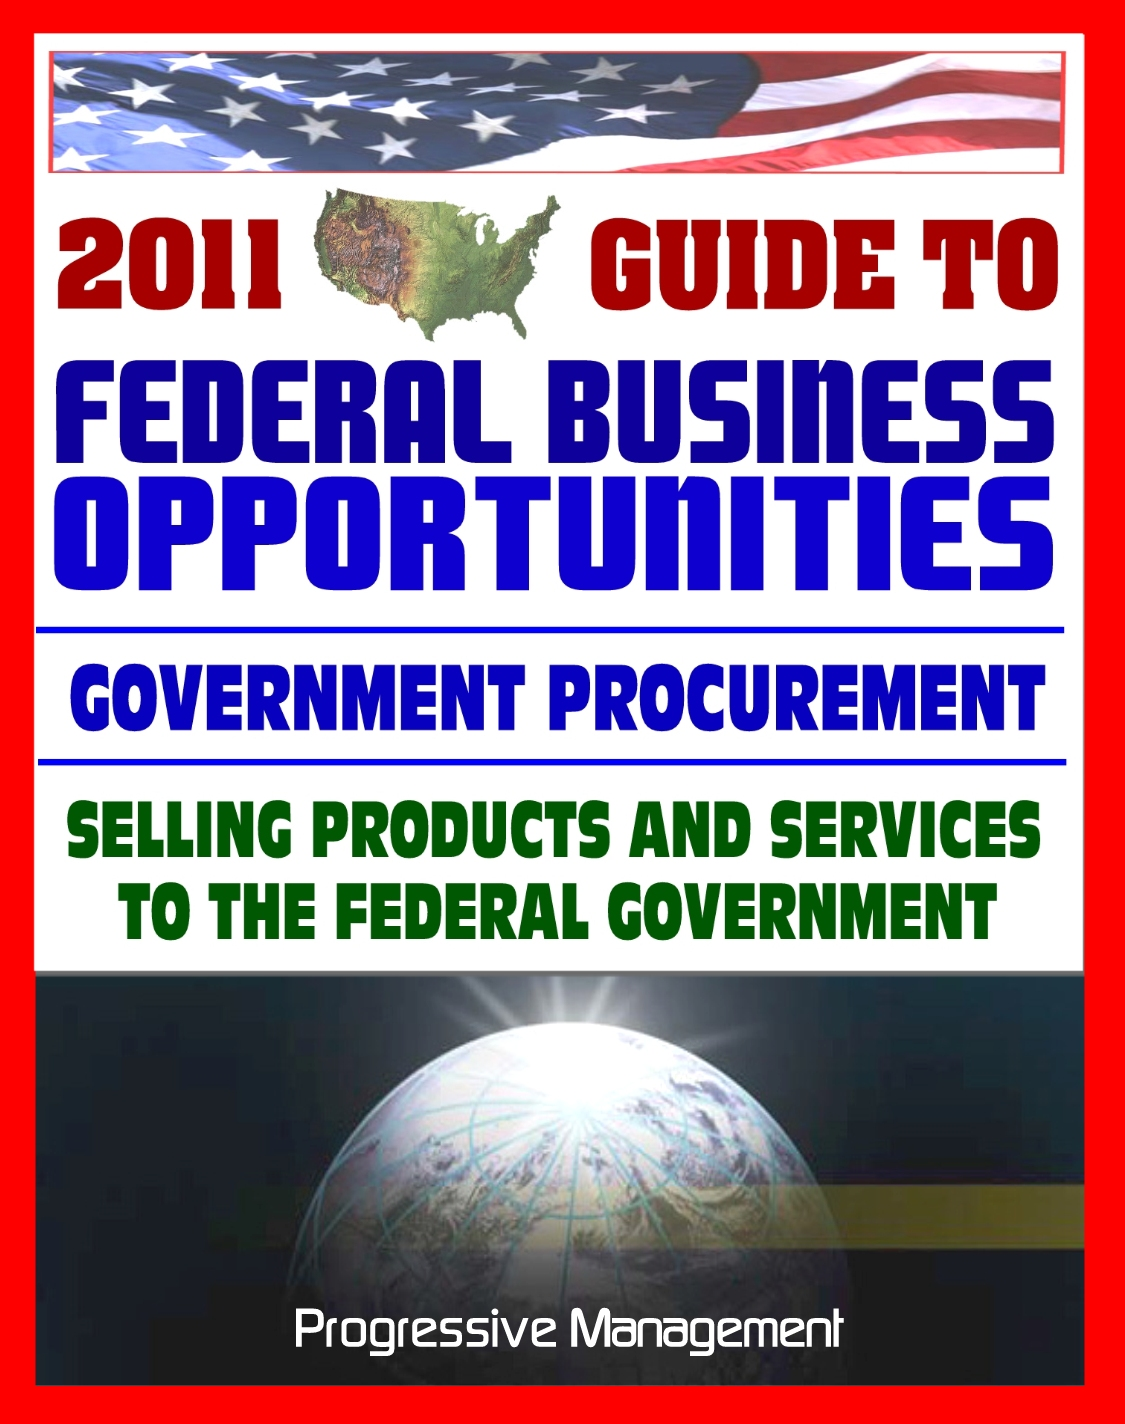 federal business opportunities Notice of the events are posted on federal business opportunities when scheduled and are posted on our internet page under outreach events forecast of procurement opportunities - the irs forecast of procurement opportunities is available under the treasury web site.